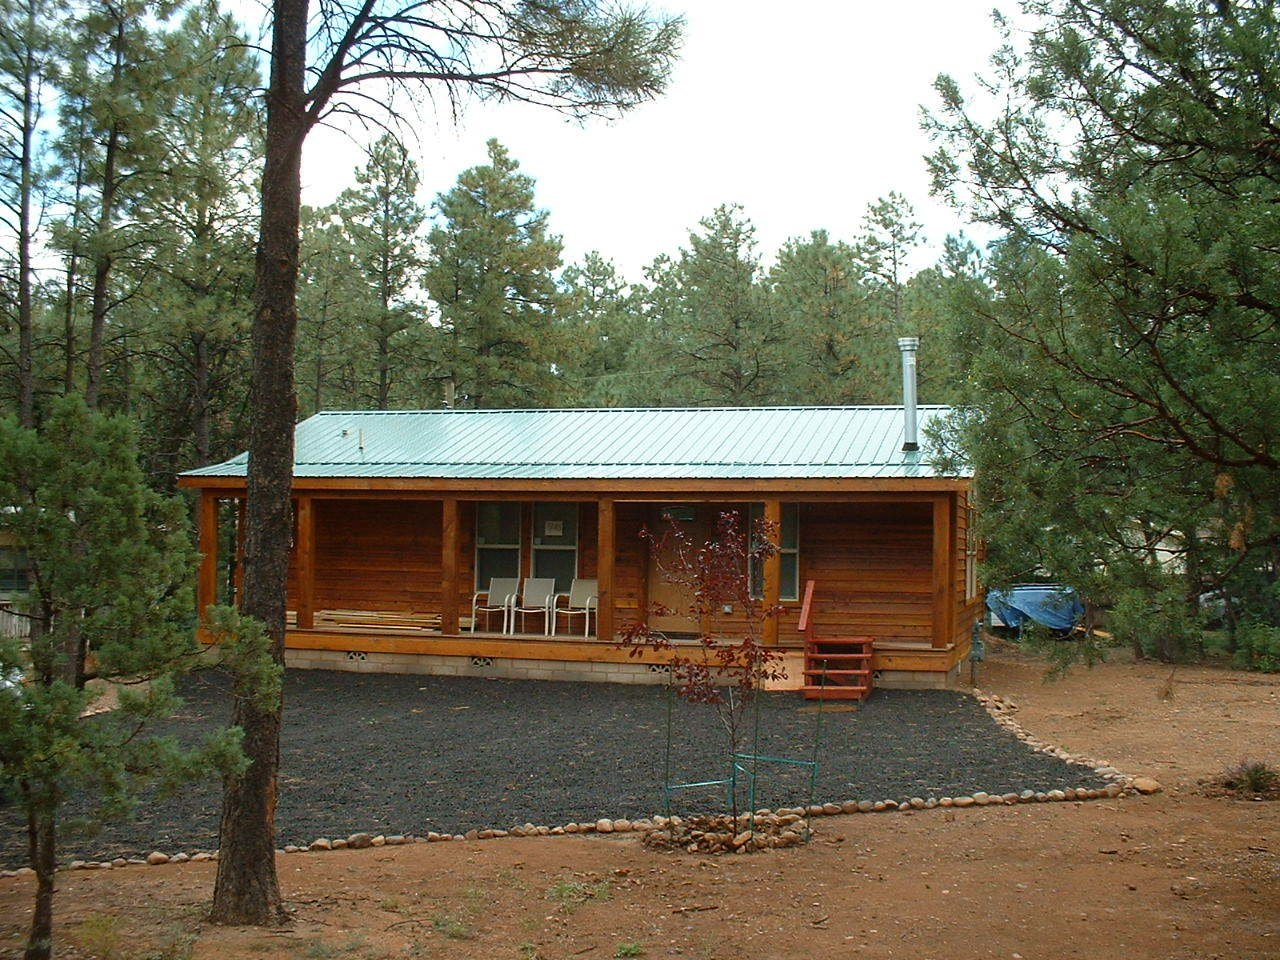 With more than 25 years of experience in a range of homes including modular, mobile, and manufactured residences, Fairbrook Homes is based in Chandler, Arizona and Chino Valley, Arizona. They offer a range of designs and styles, including more rustic cabins.